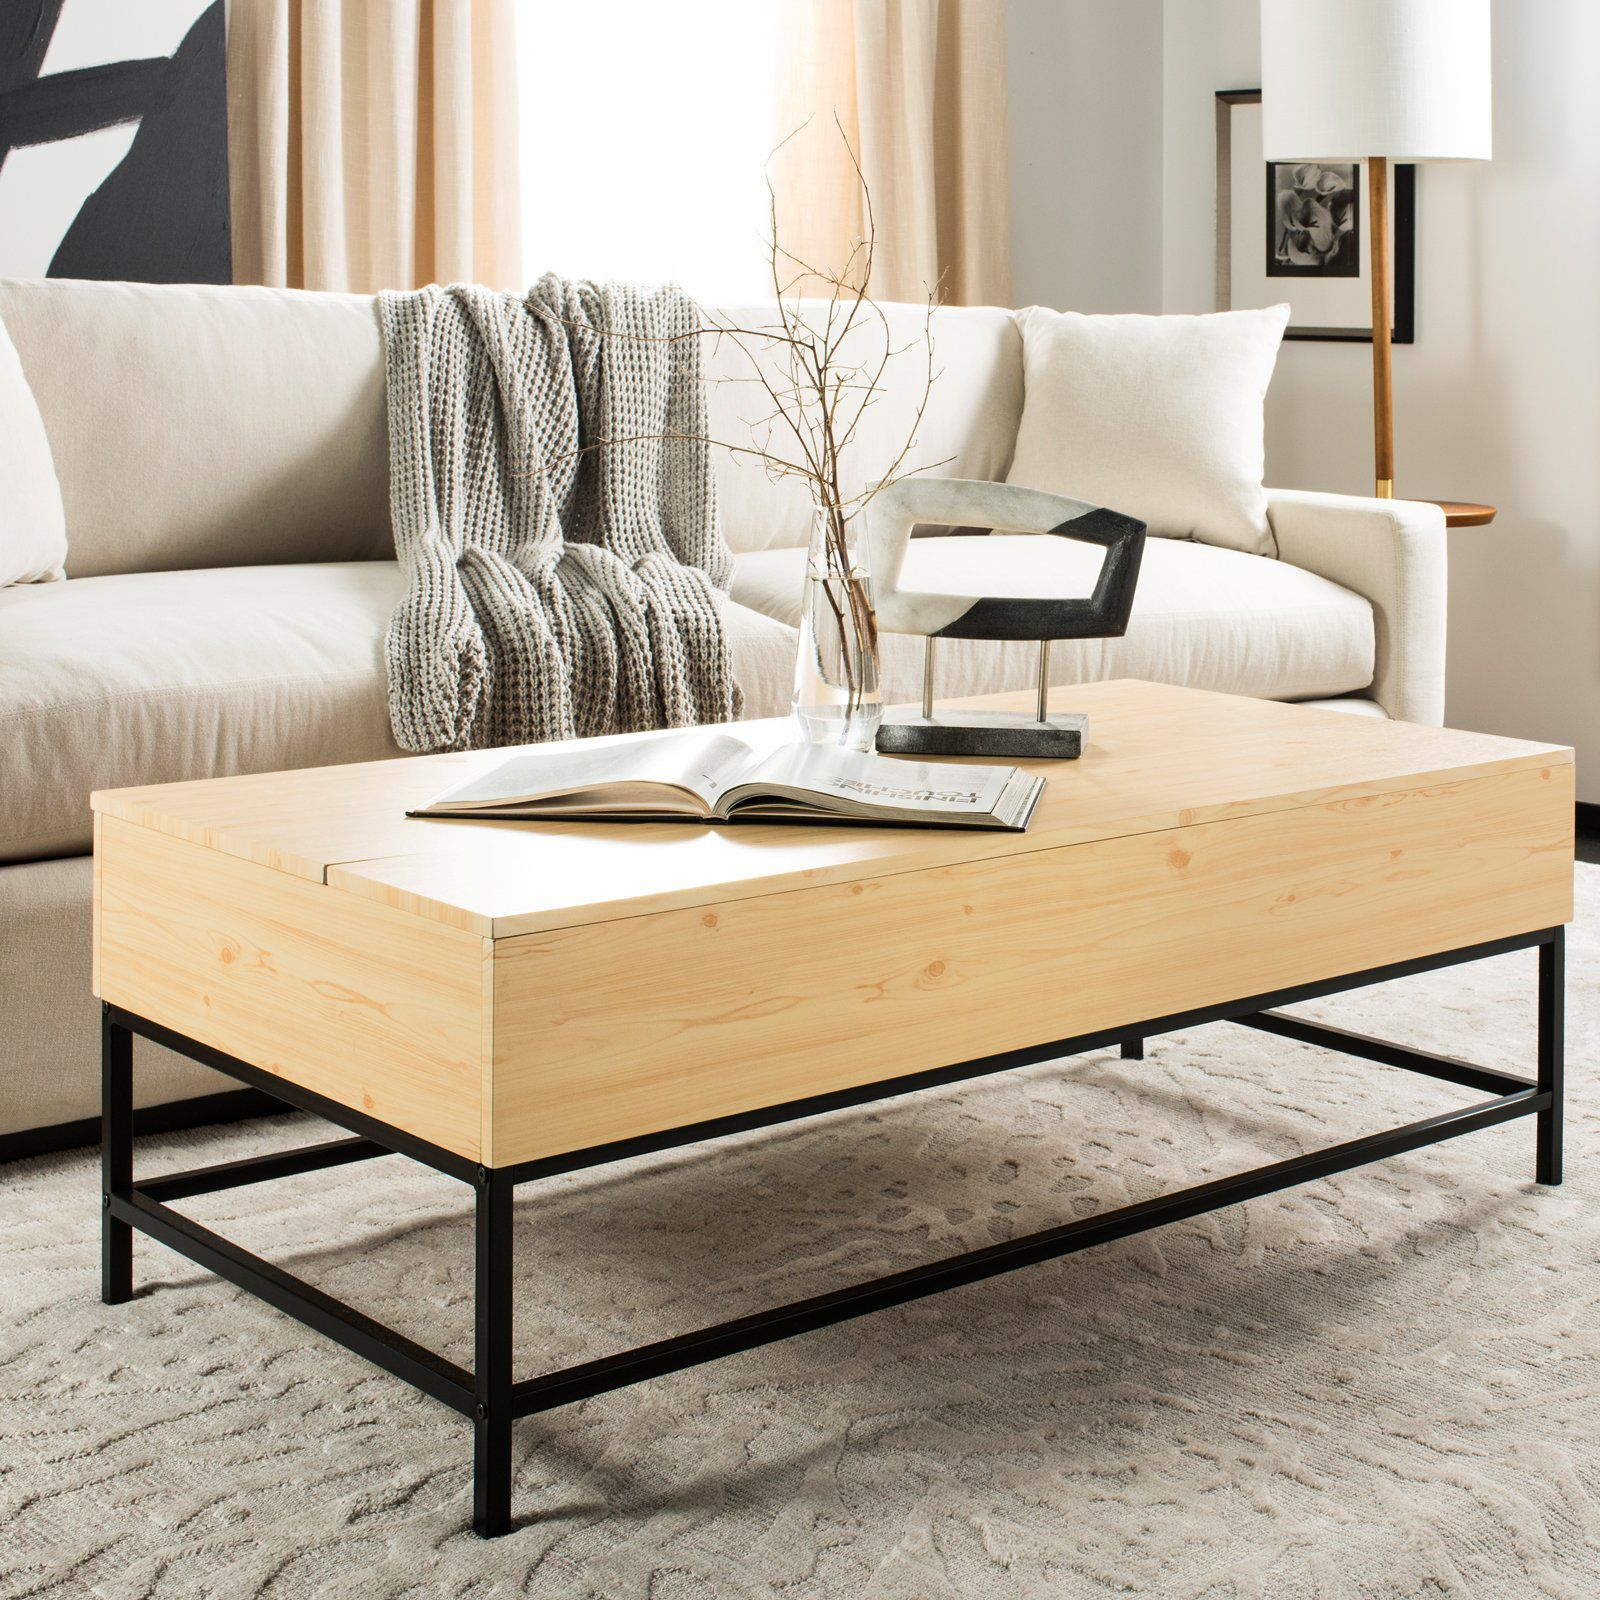 small coffee table with storage accent tables square baskets cool wood round full size big and tall recliners antique iron beds pier buffet outdoor umbrella base vaughan furniture